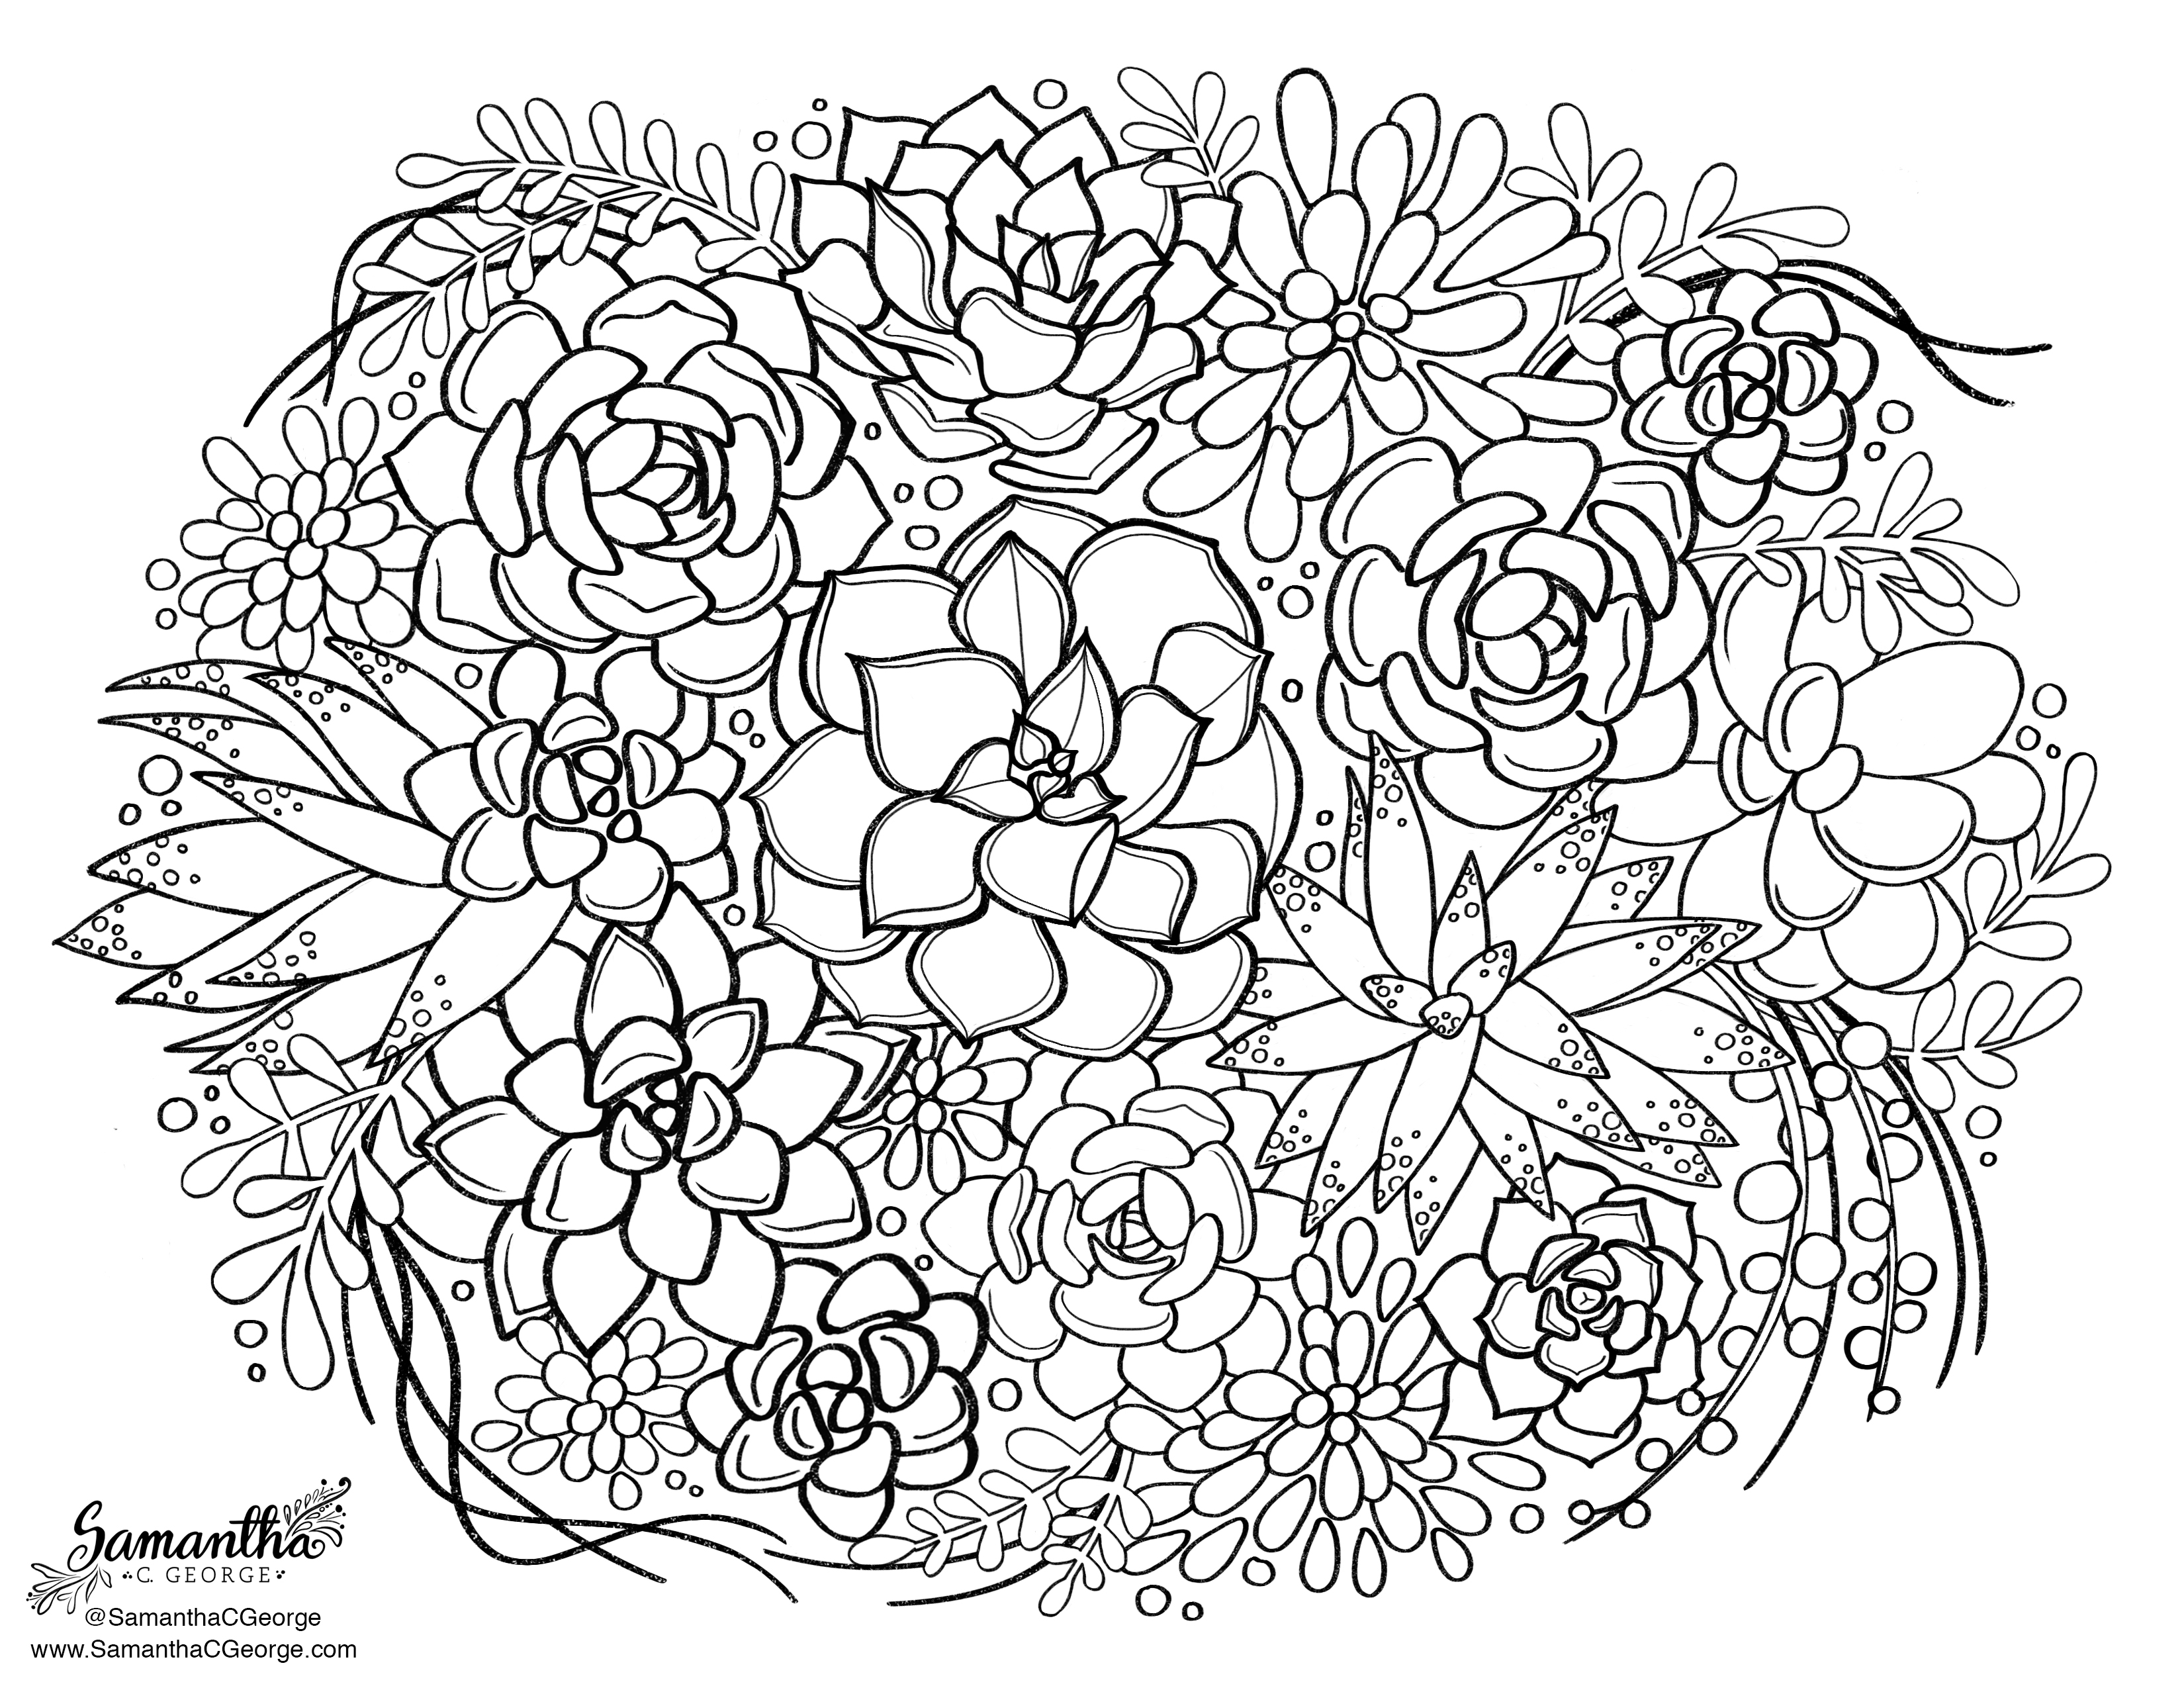 Succulent Coloring Page Samantha C George